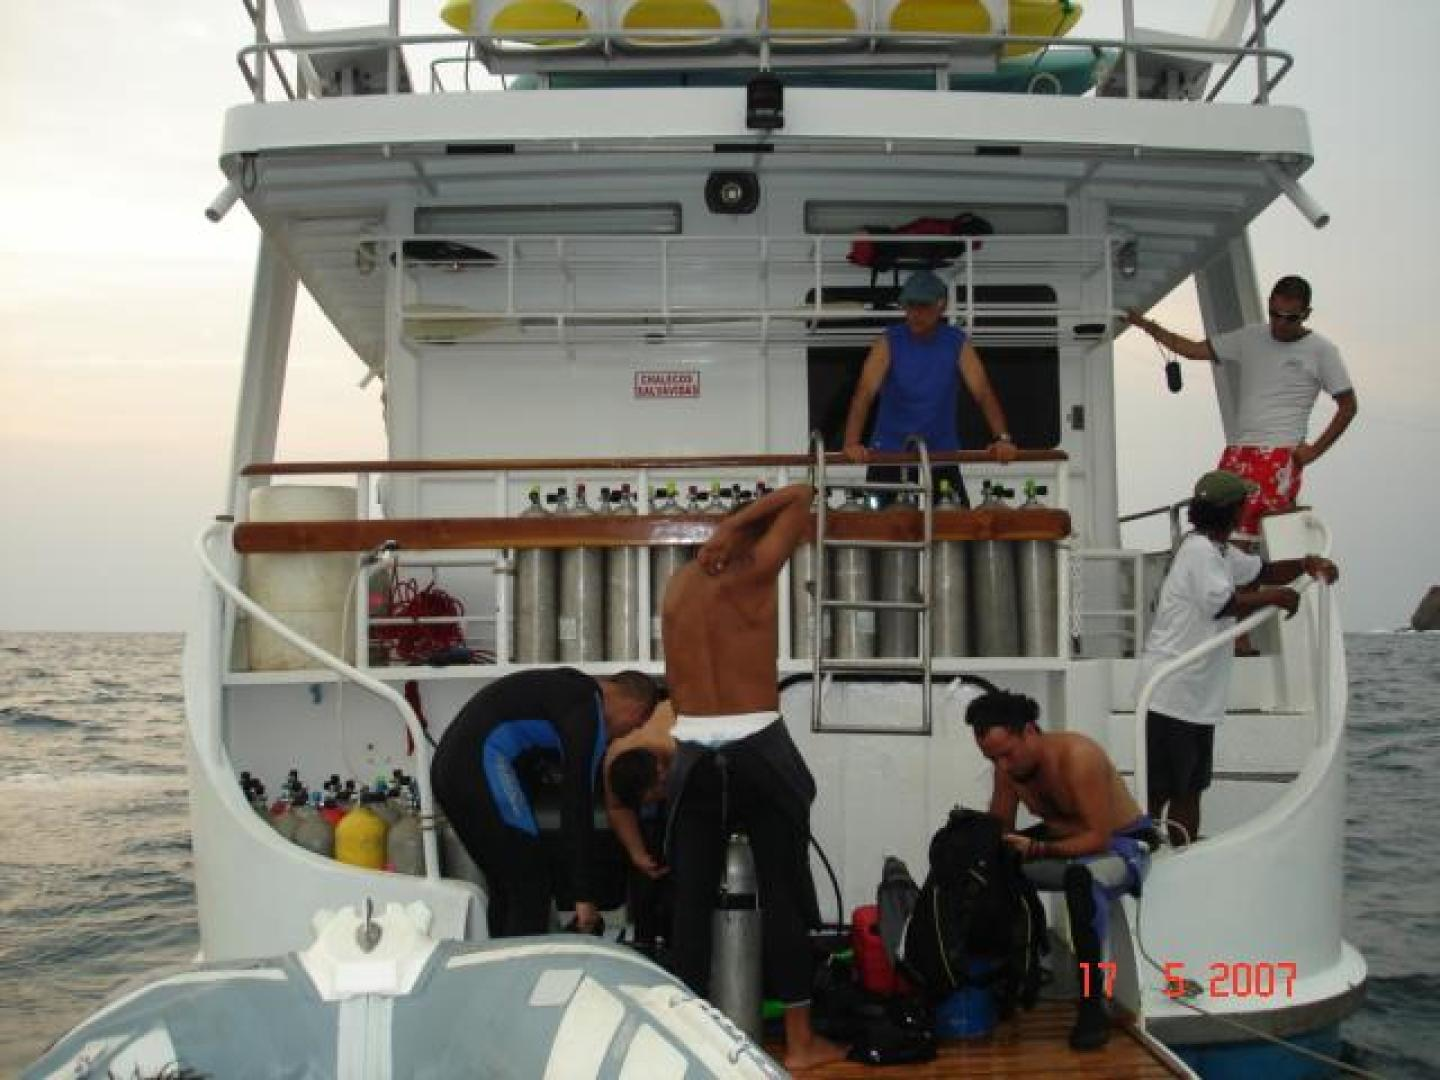 Custom-Yacht 85 Dive Expedtion 1982 -Costa Rica-1173746 | Thumbnail